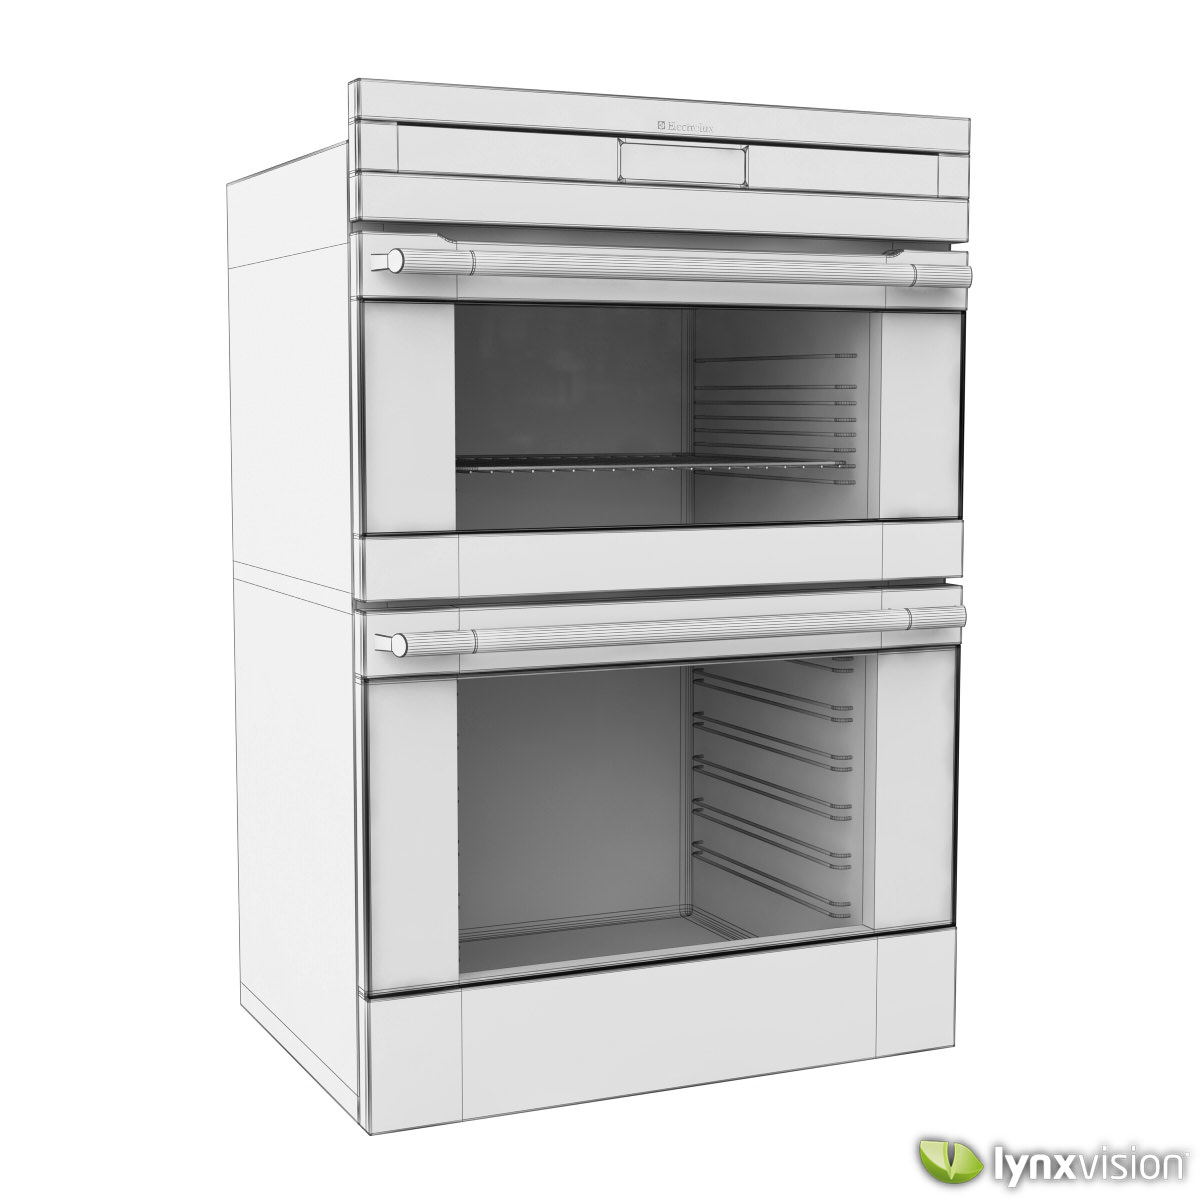 Electrolux Digital Double Oven 3D | CGTrader